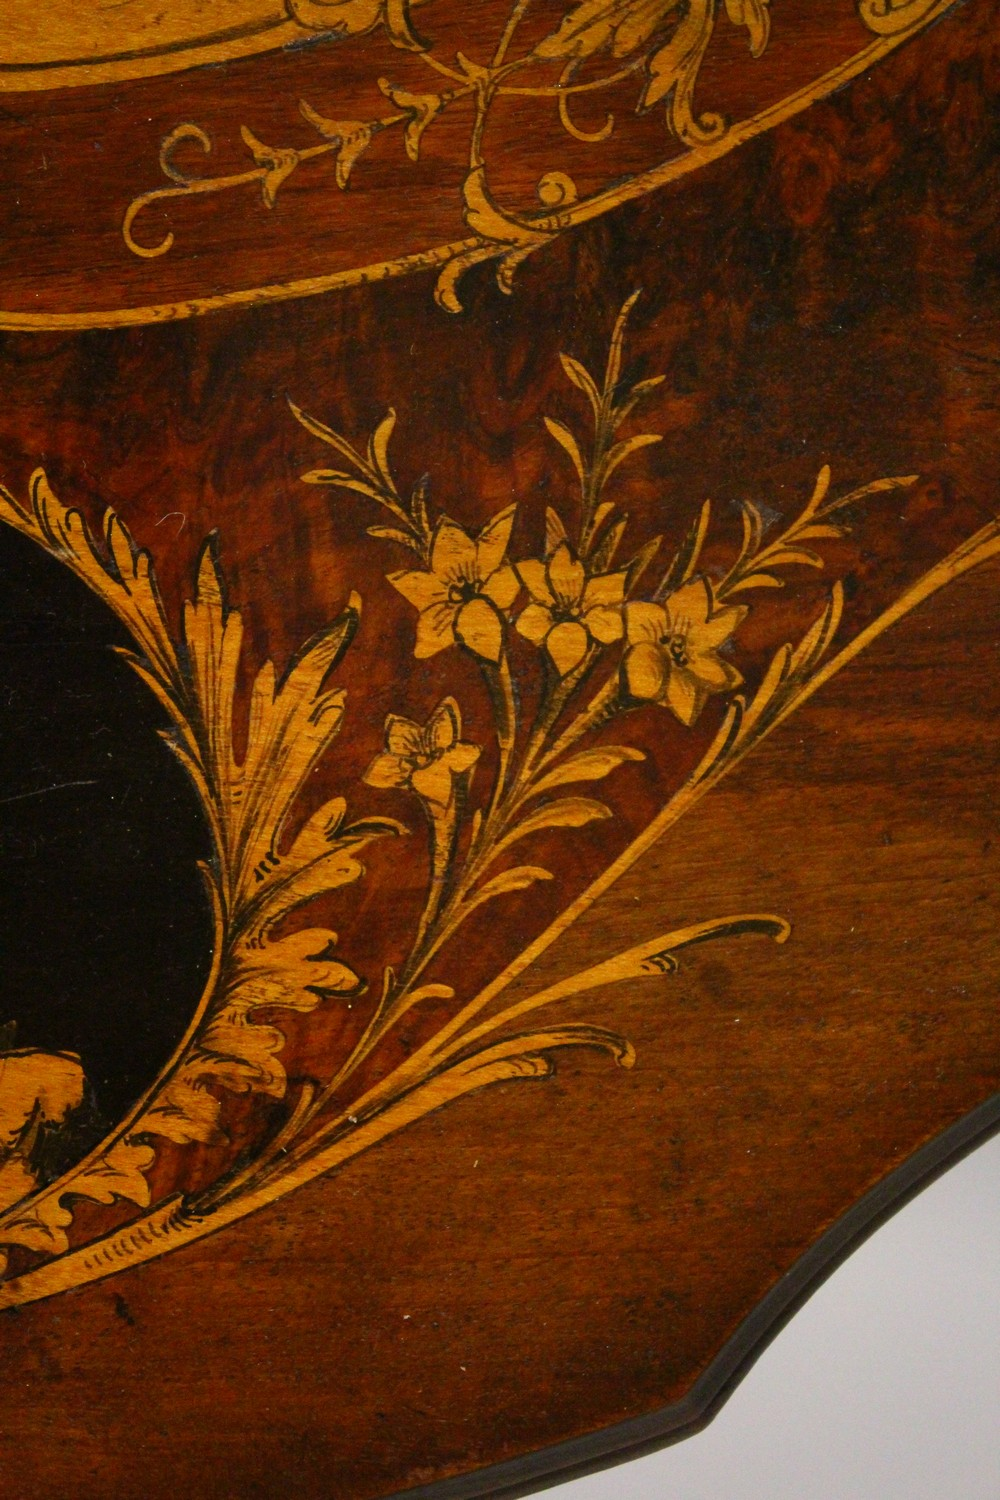 Lot 1001 - A LATE 19TH CENTURY BLACK FOREST INLAID WALNUT TRIPOD TABLE, the shaped top inlaid with mountain